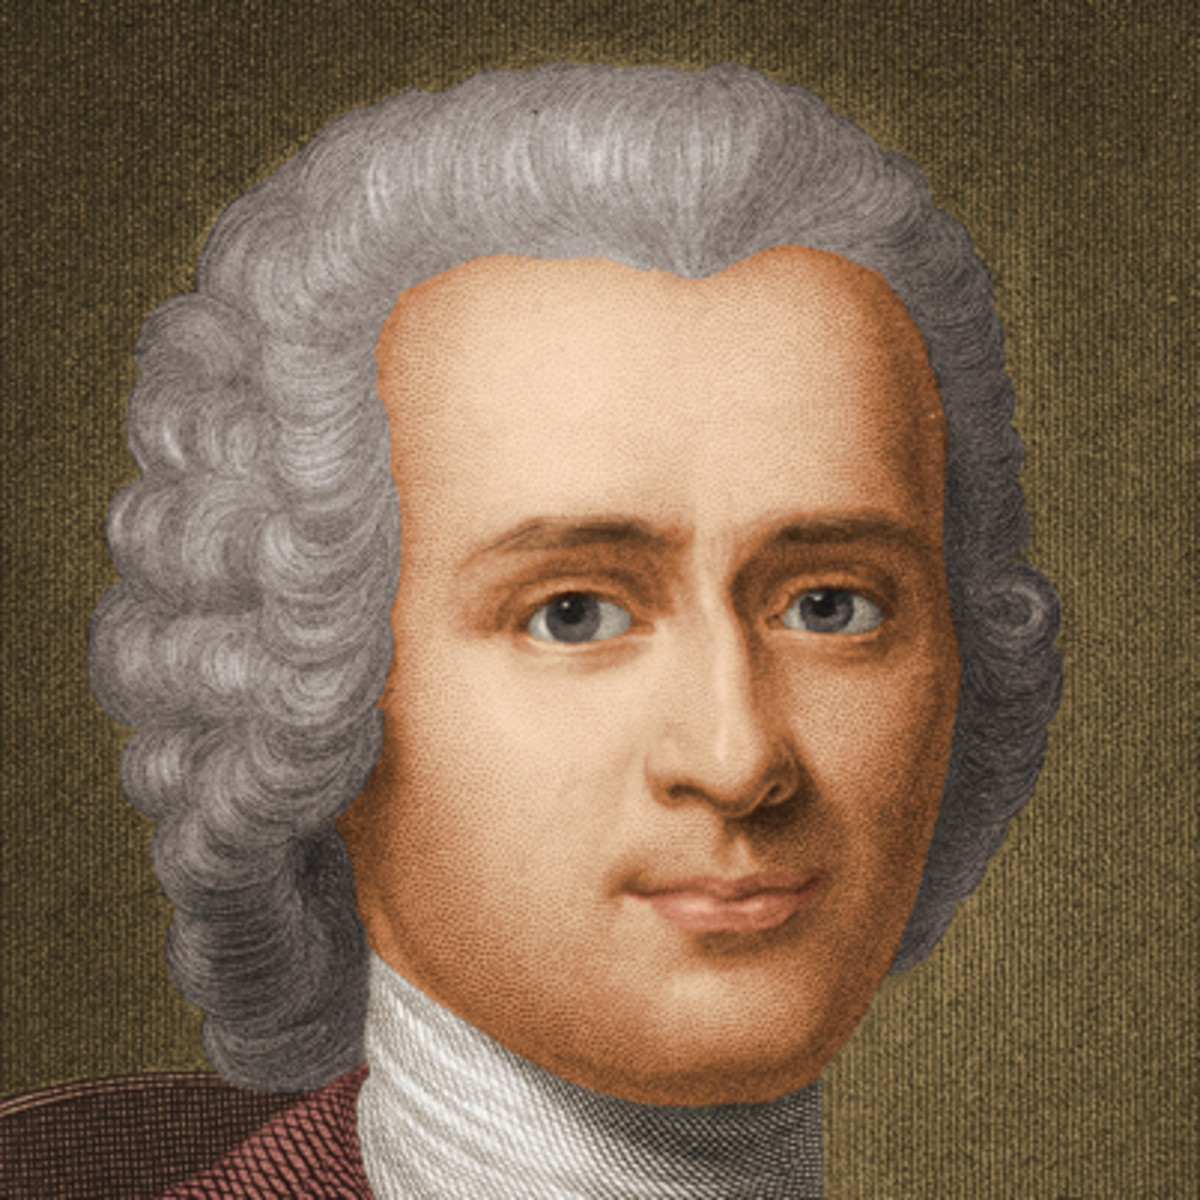 jean jacques rousseau philosopher songwriter com